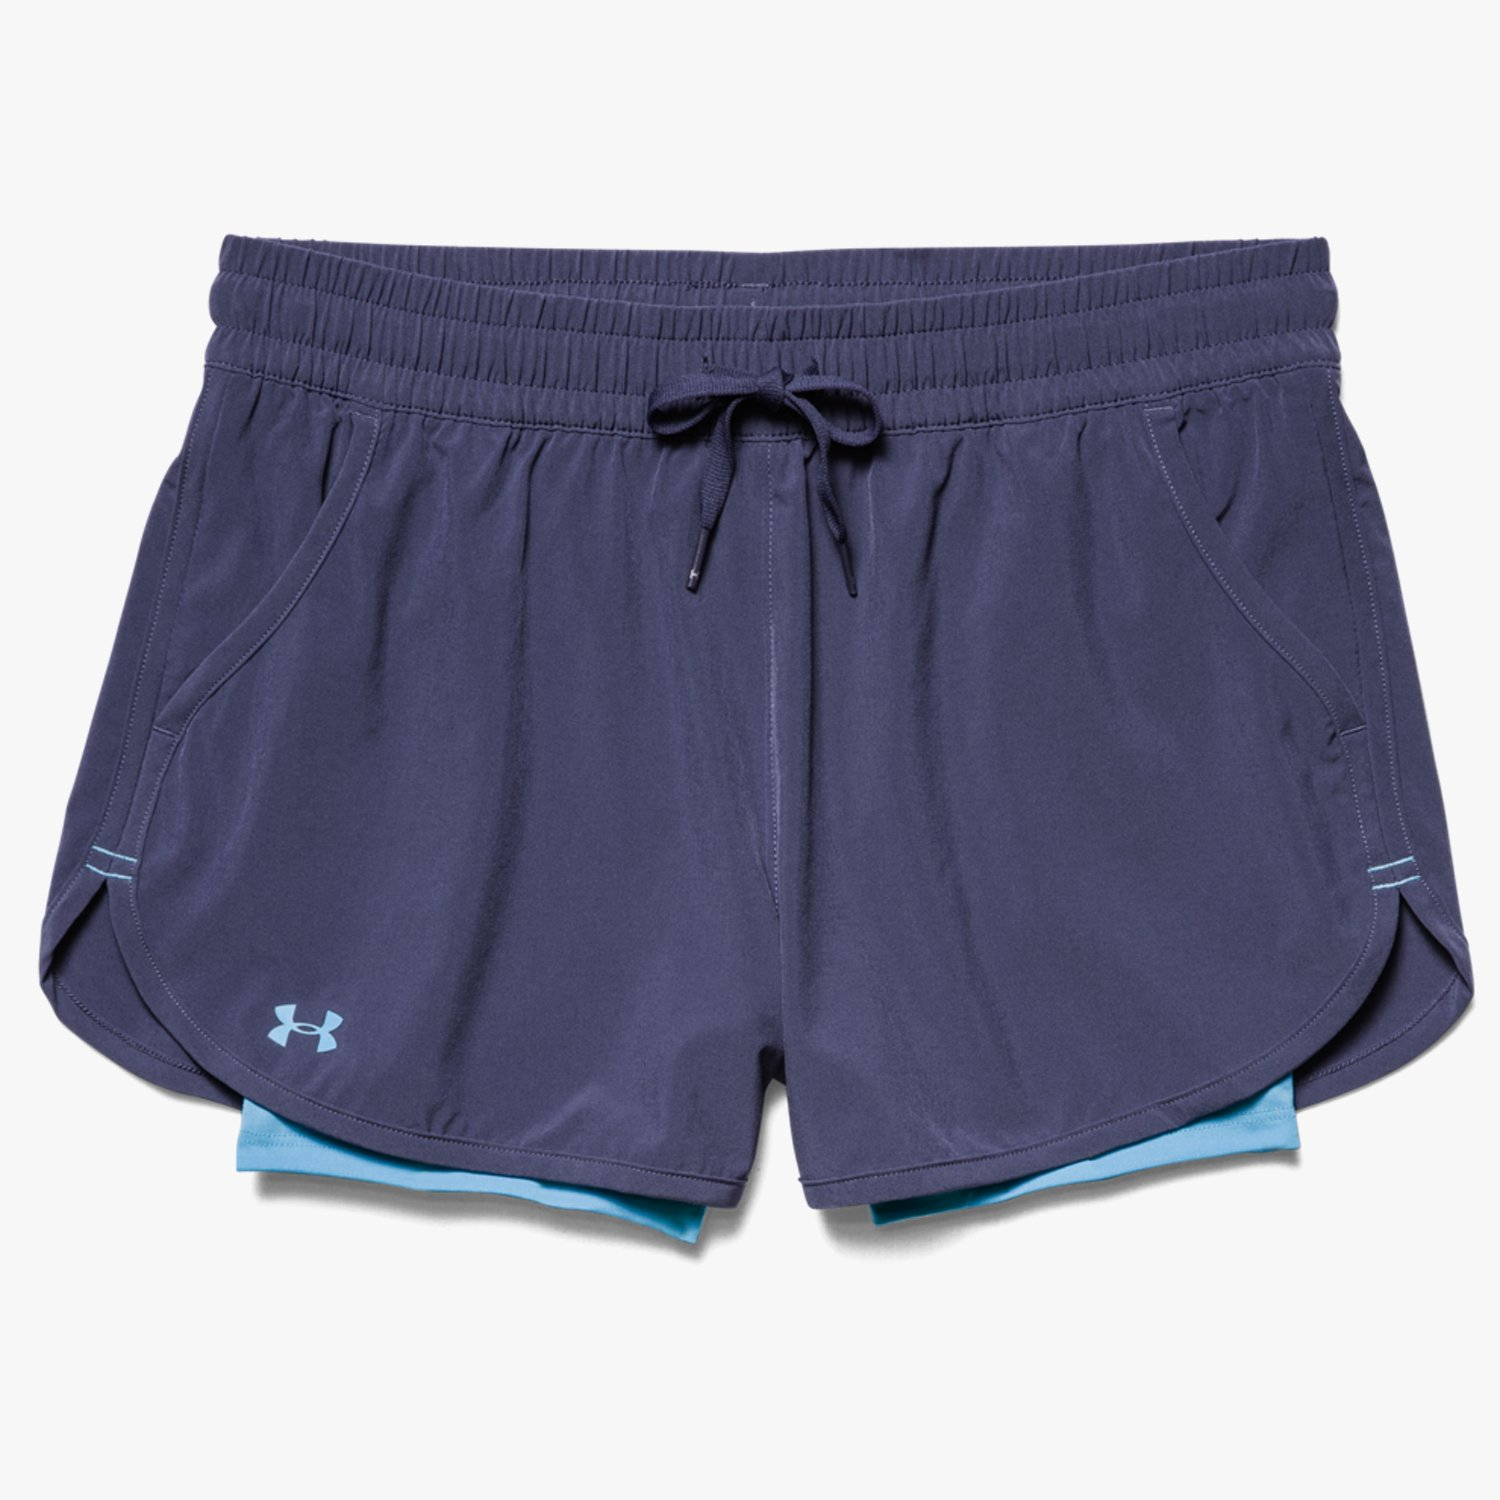 Under Armour UA 2X Rally Shorts Faded Ink/Island Blue/Island Blue-30